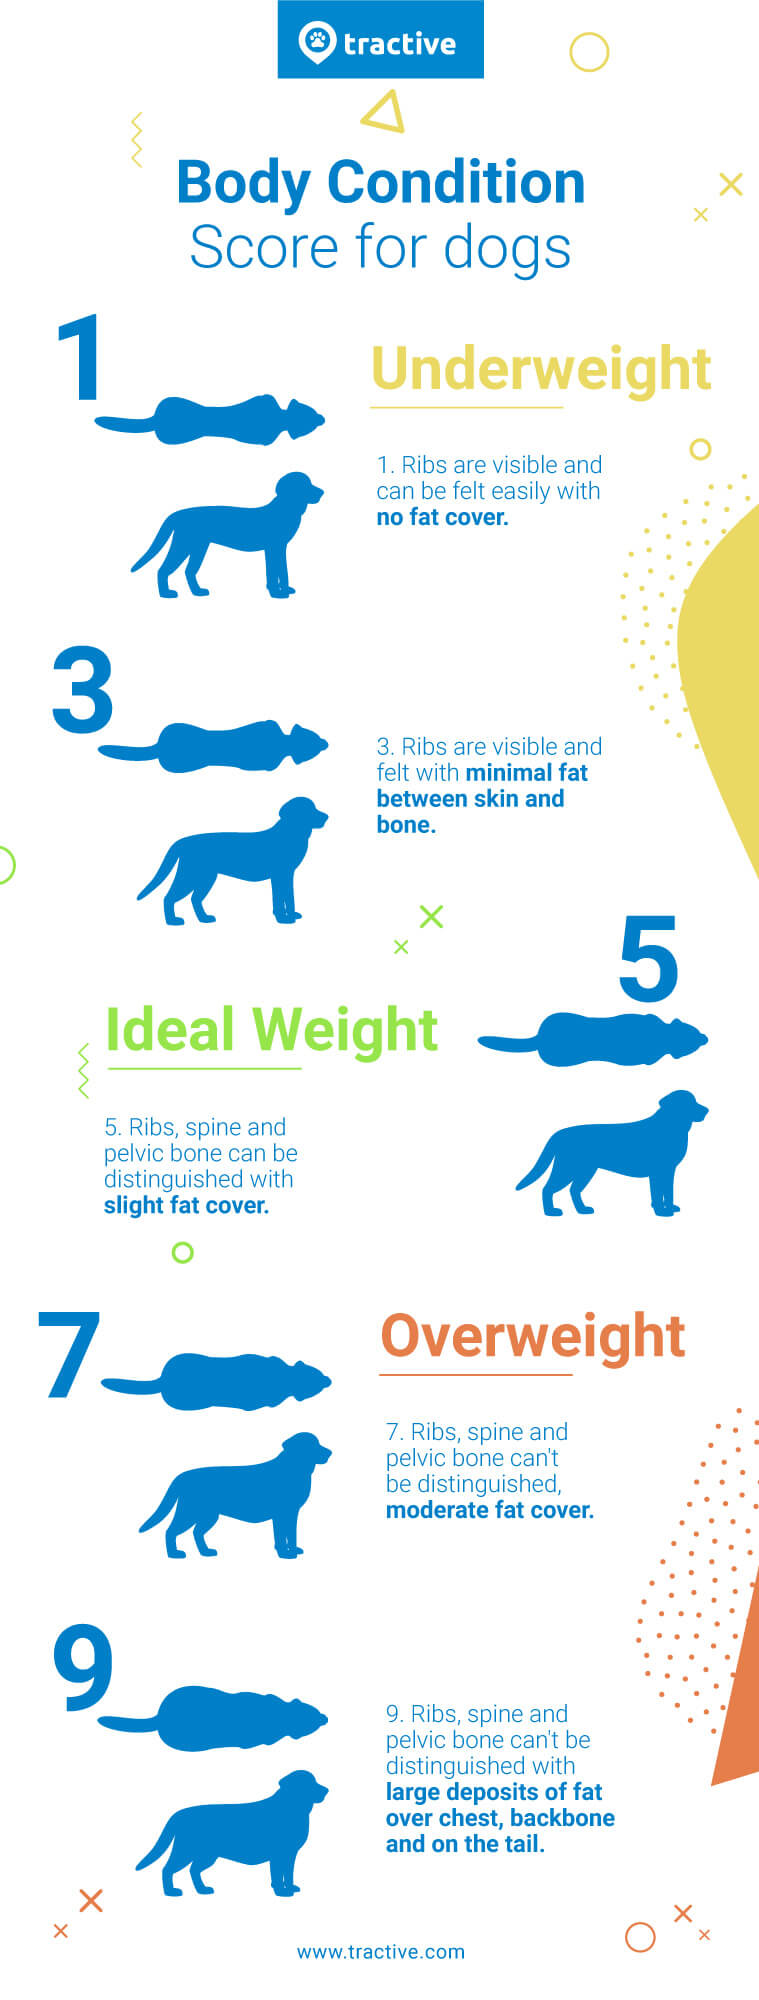 body condition score chart for dogs - infographic for overweight dogs